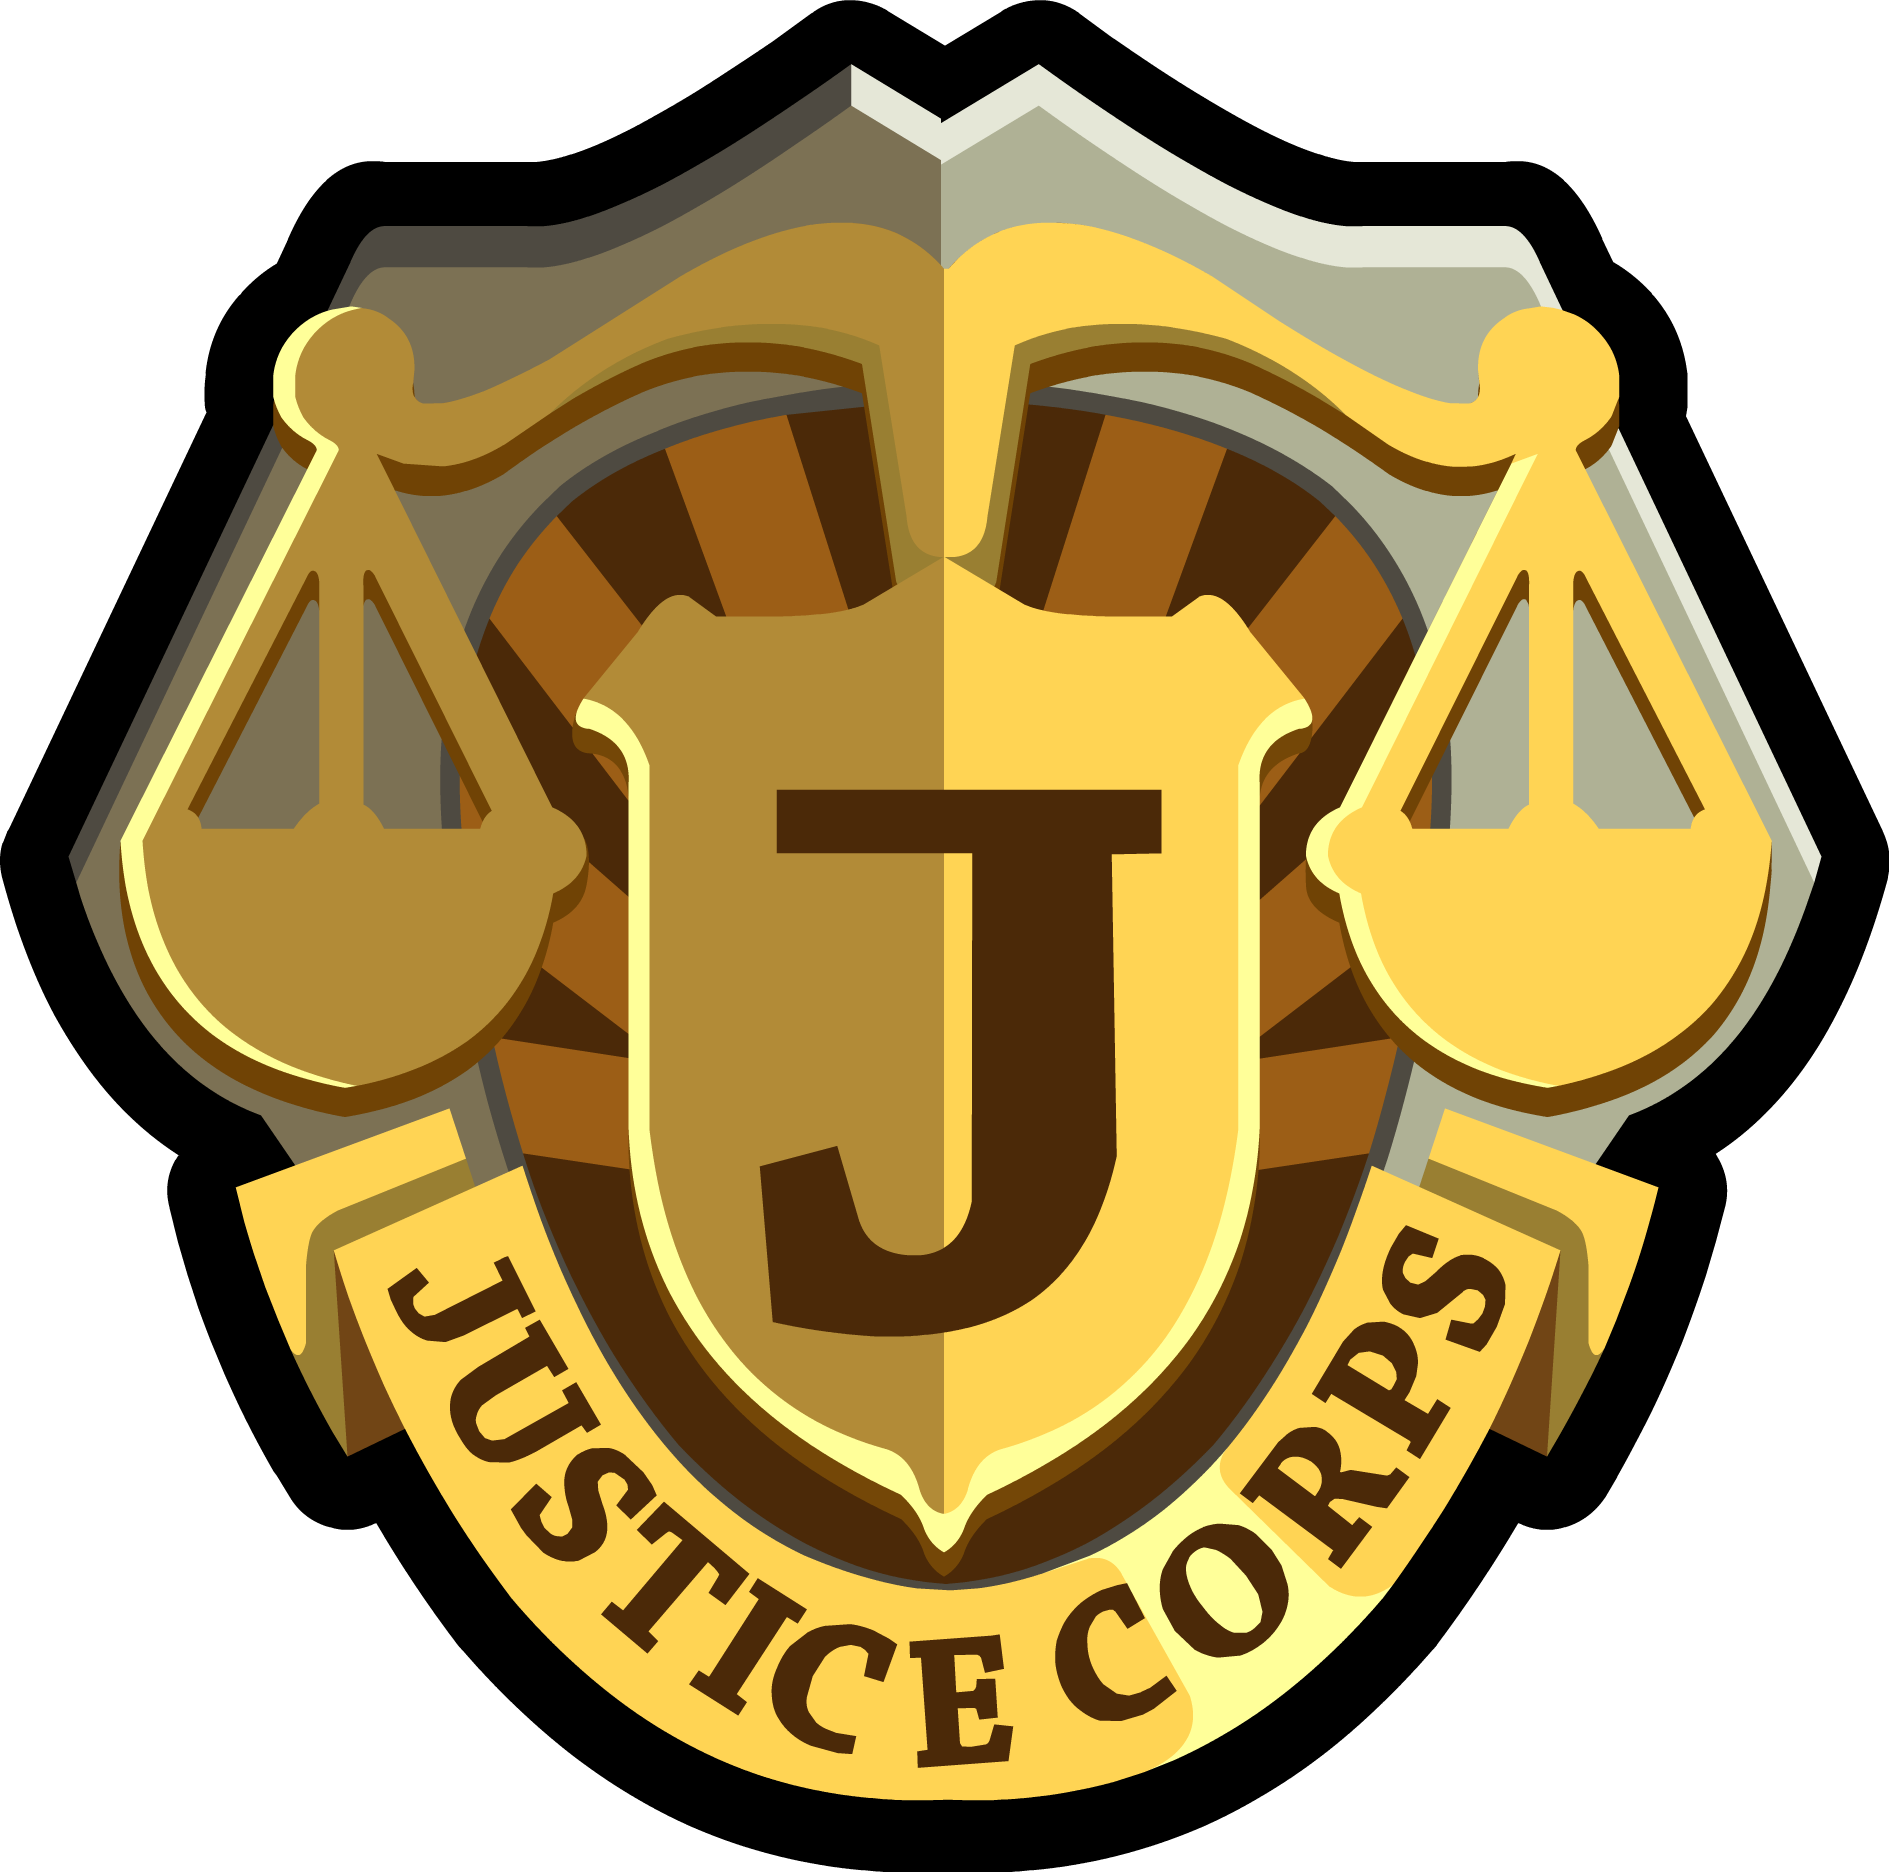 Judge clipart criminal trial. Justice corps case wiki